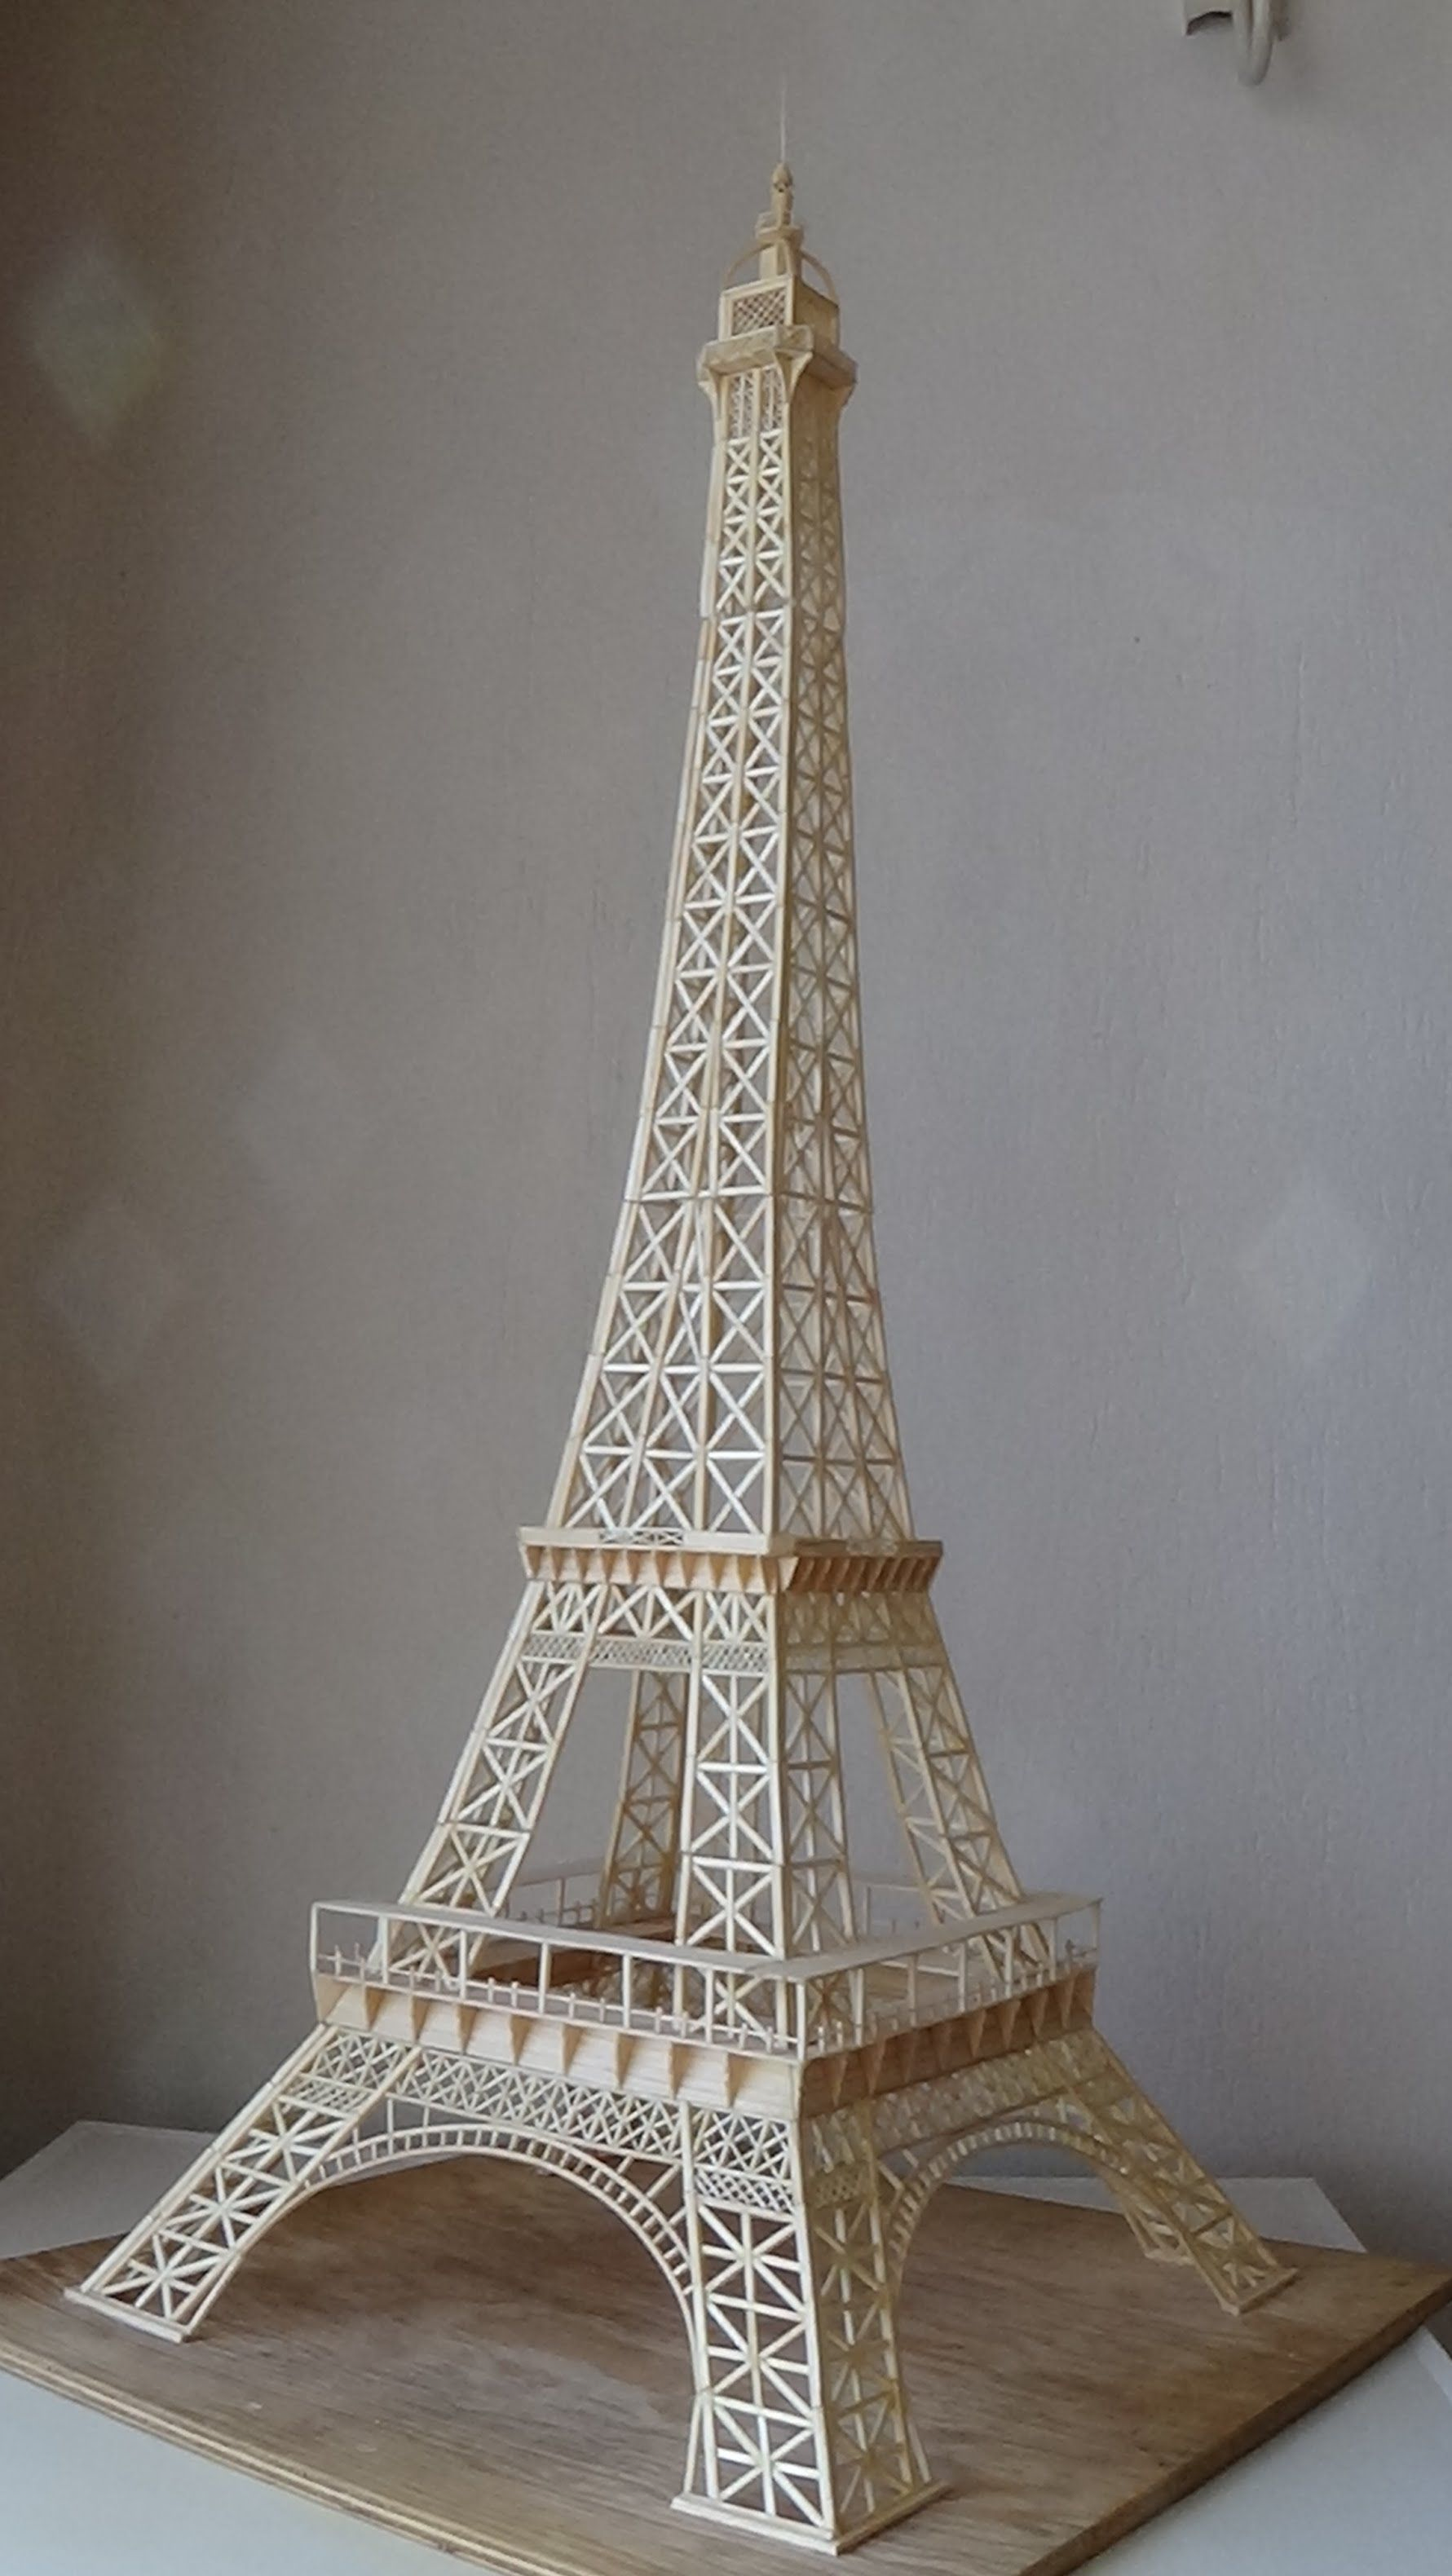 How To Make An Eiffel Tower With Sticks Eiffel Tower Craft Eiffel Tower Art Eiffel Tower